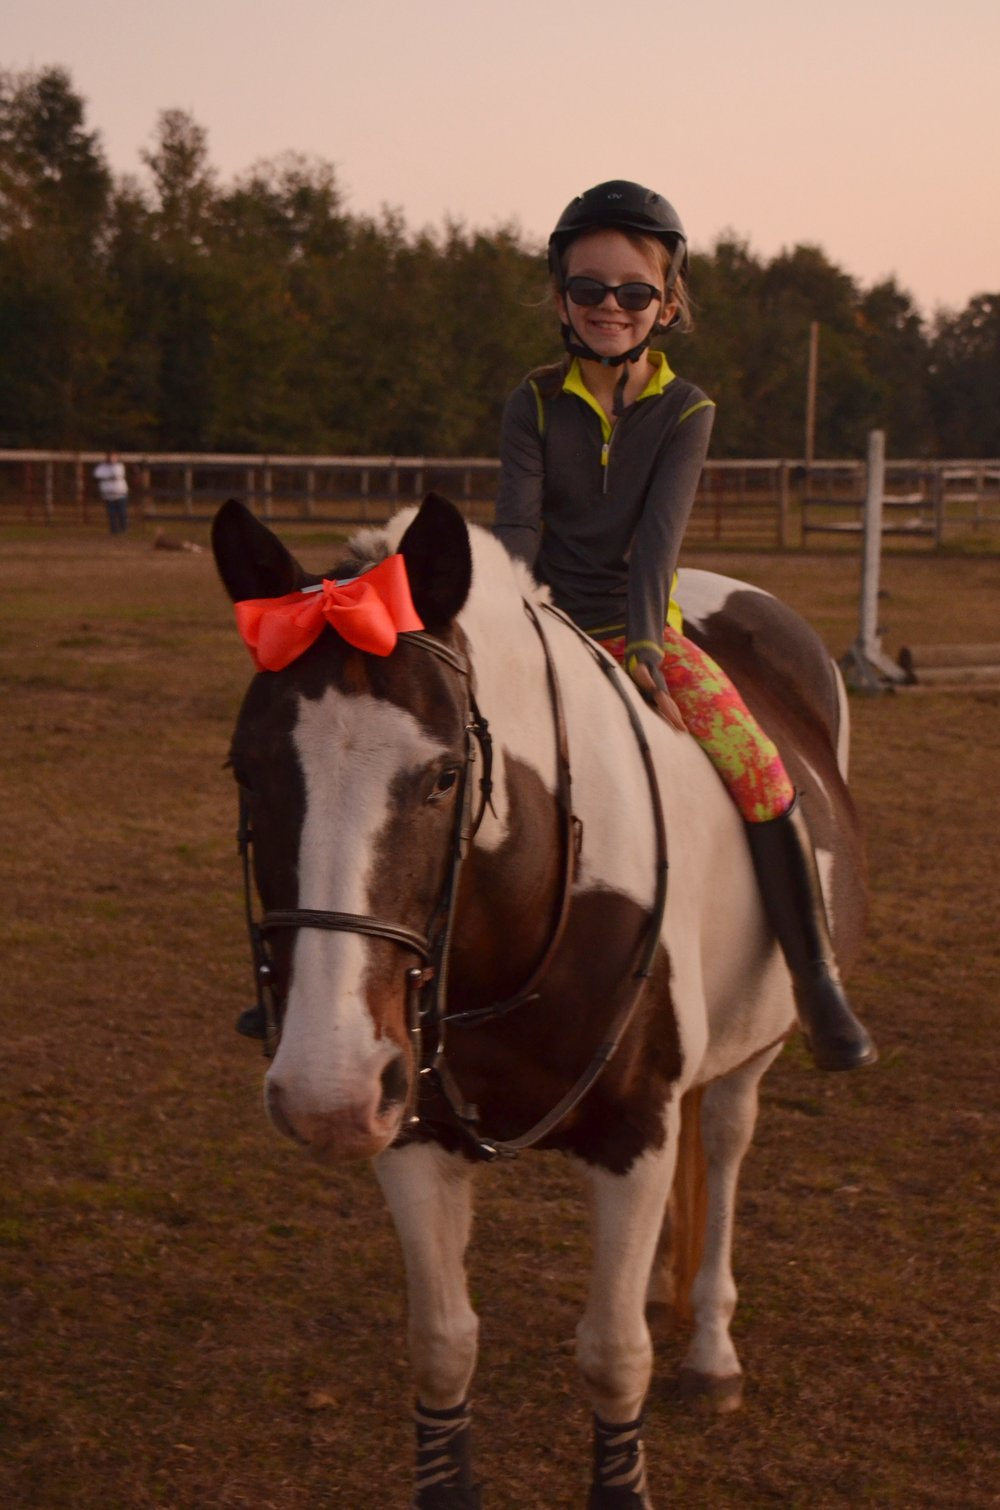 Sunriser Stables - Riding Lessons in Pensacola FL - English Horse Riding Barn and Stable (1).JPG